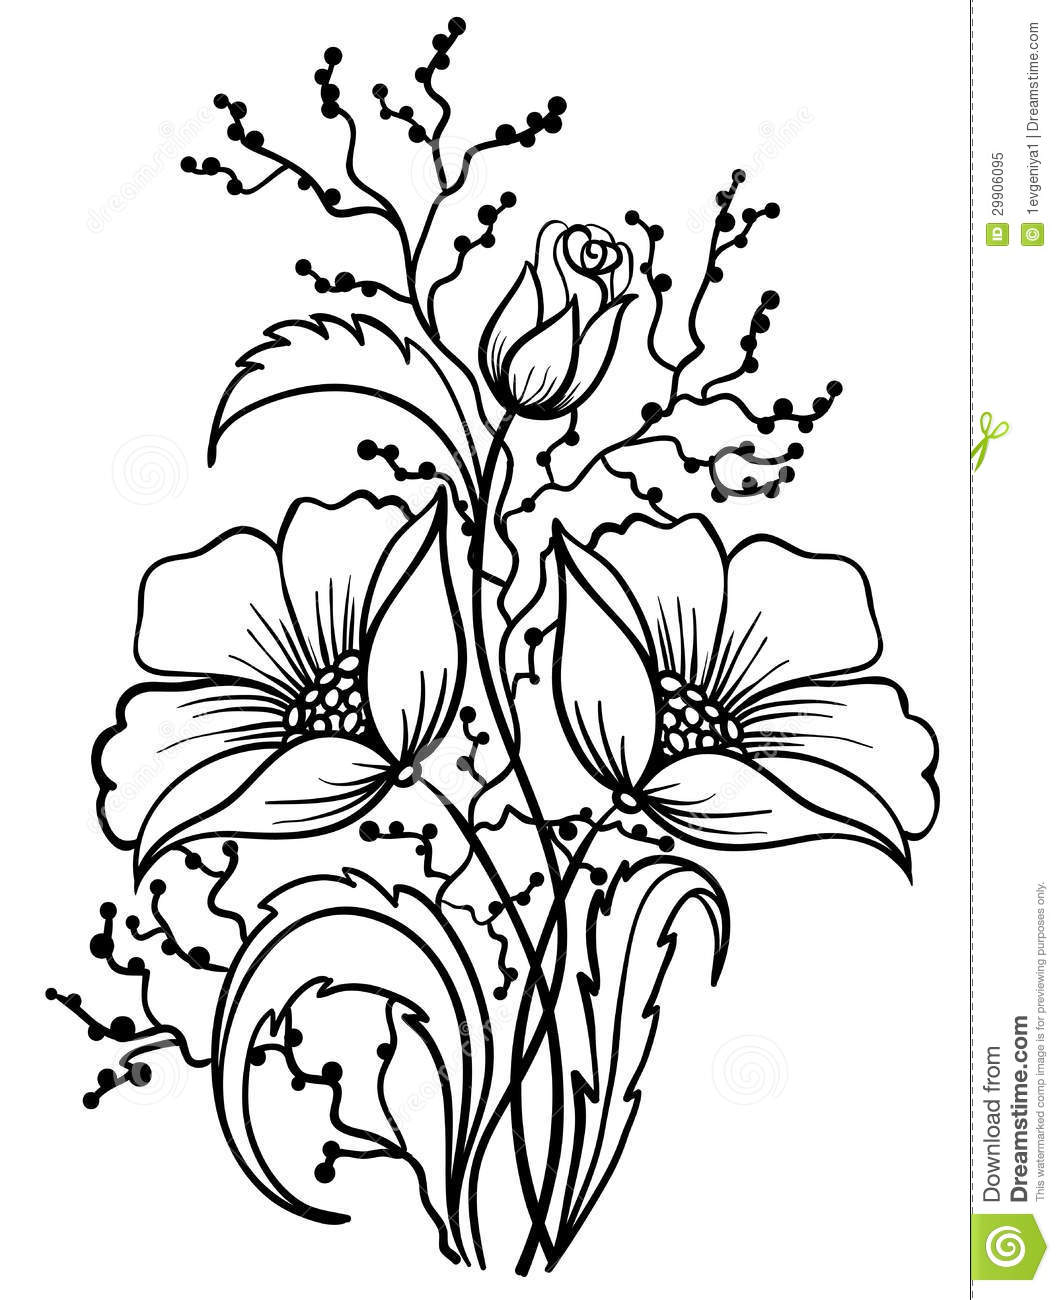 Arrangement Of Flowers Black And White Outline Drawing